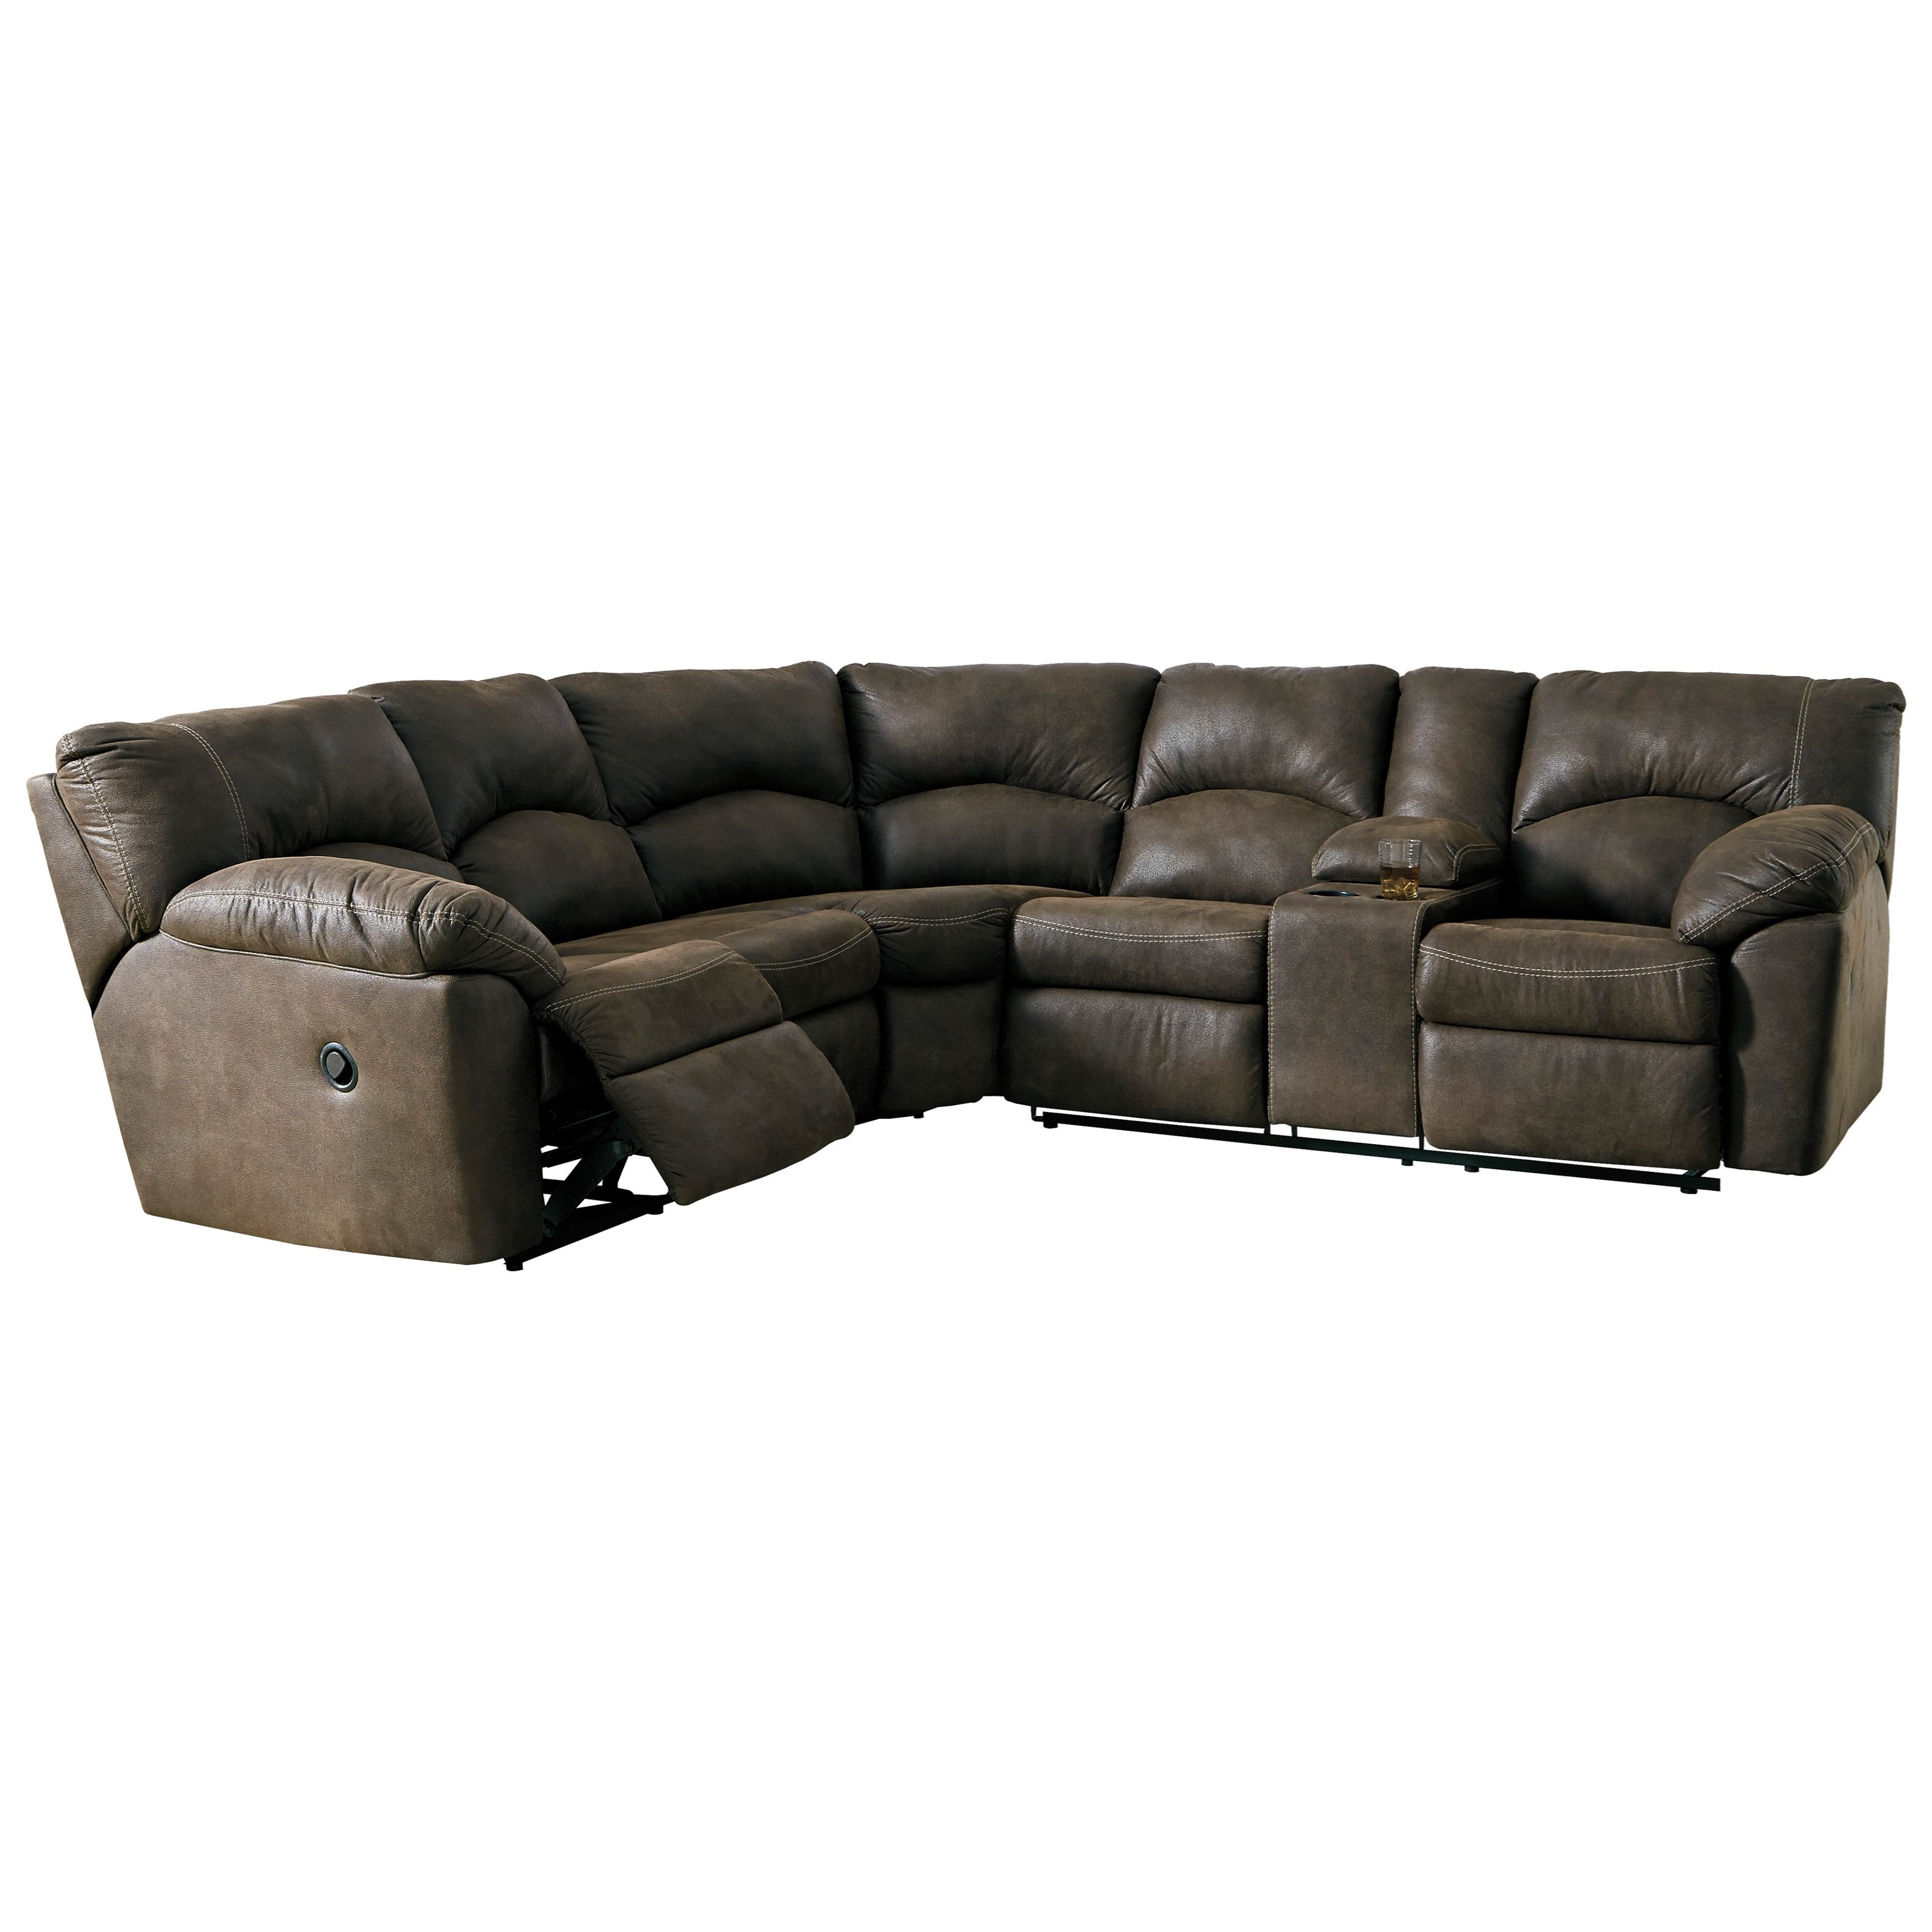 Tambo 2-Piece Reclining Corner Sectional by Signature Design by Ashley at Value City Furniture